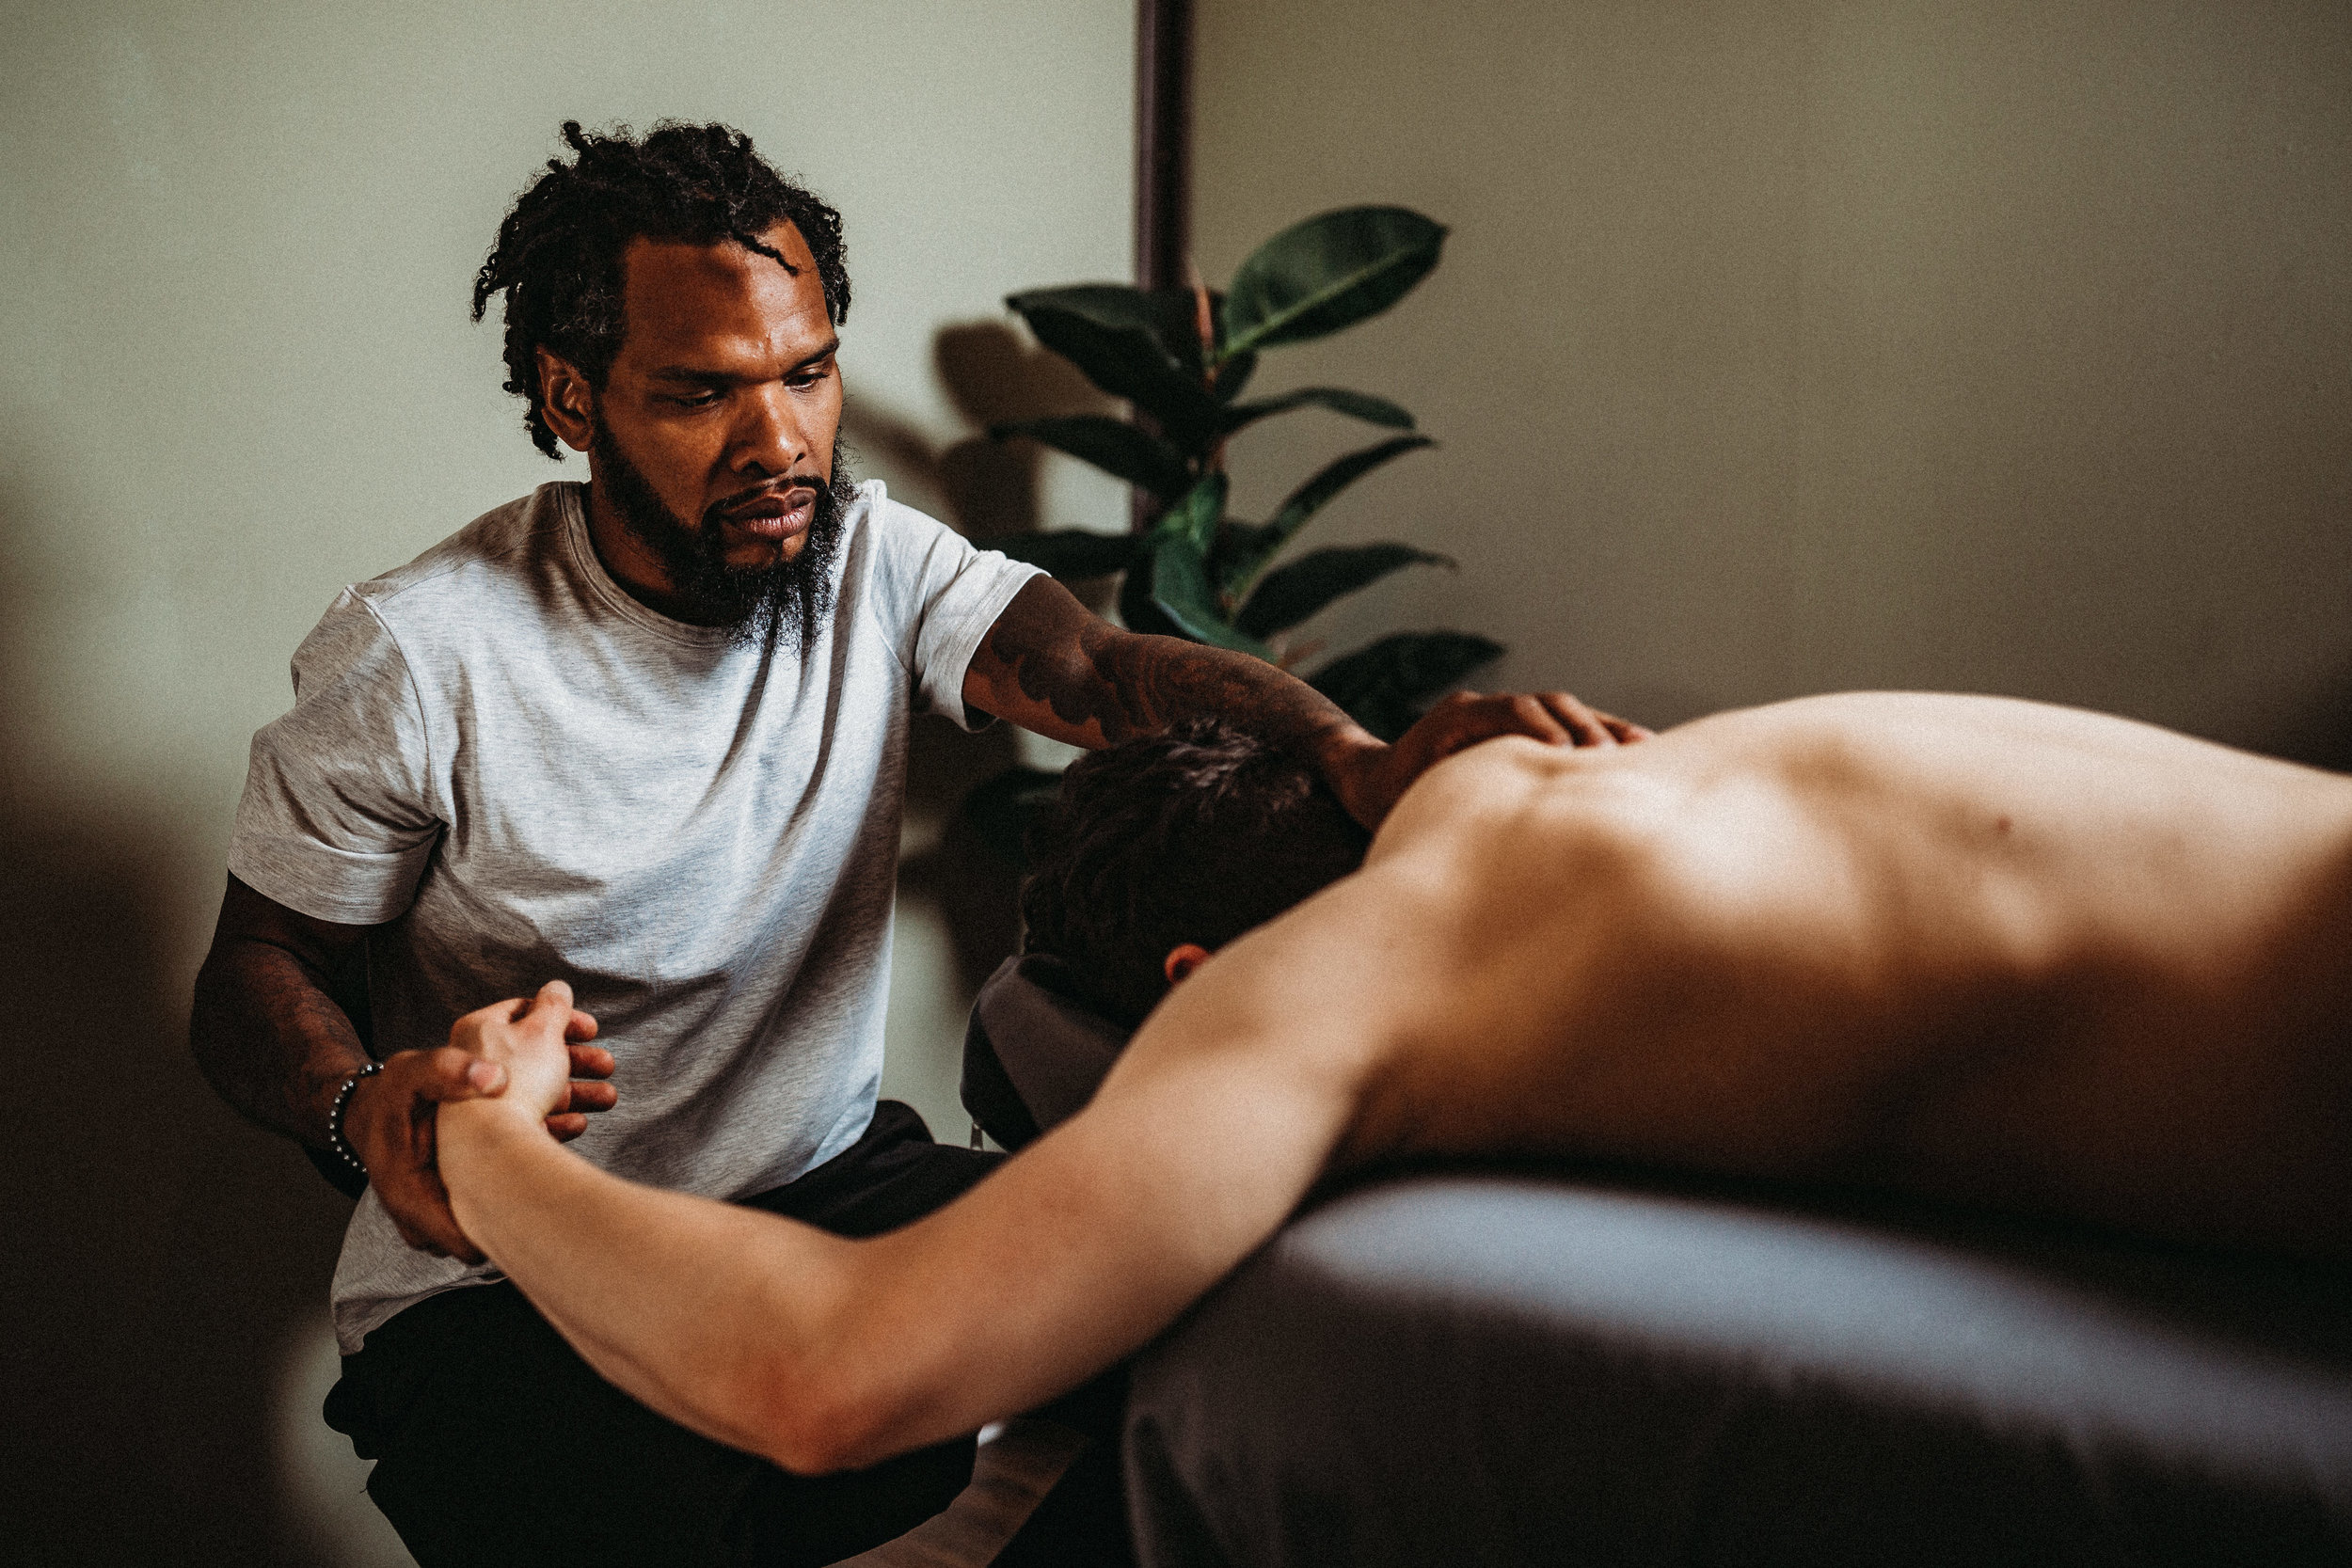 DEEP TISSUE SPORTS MASSAGE -